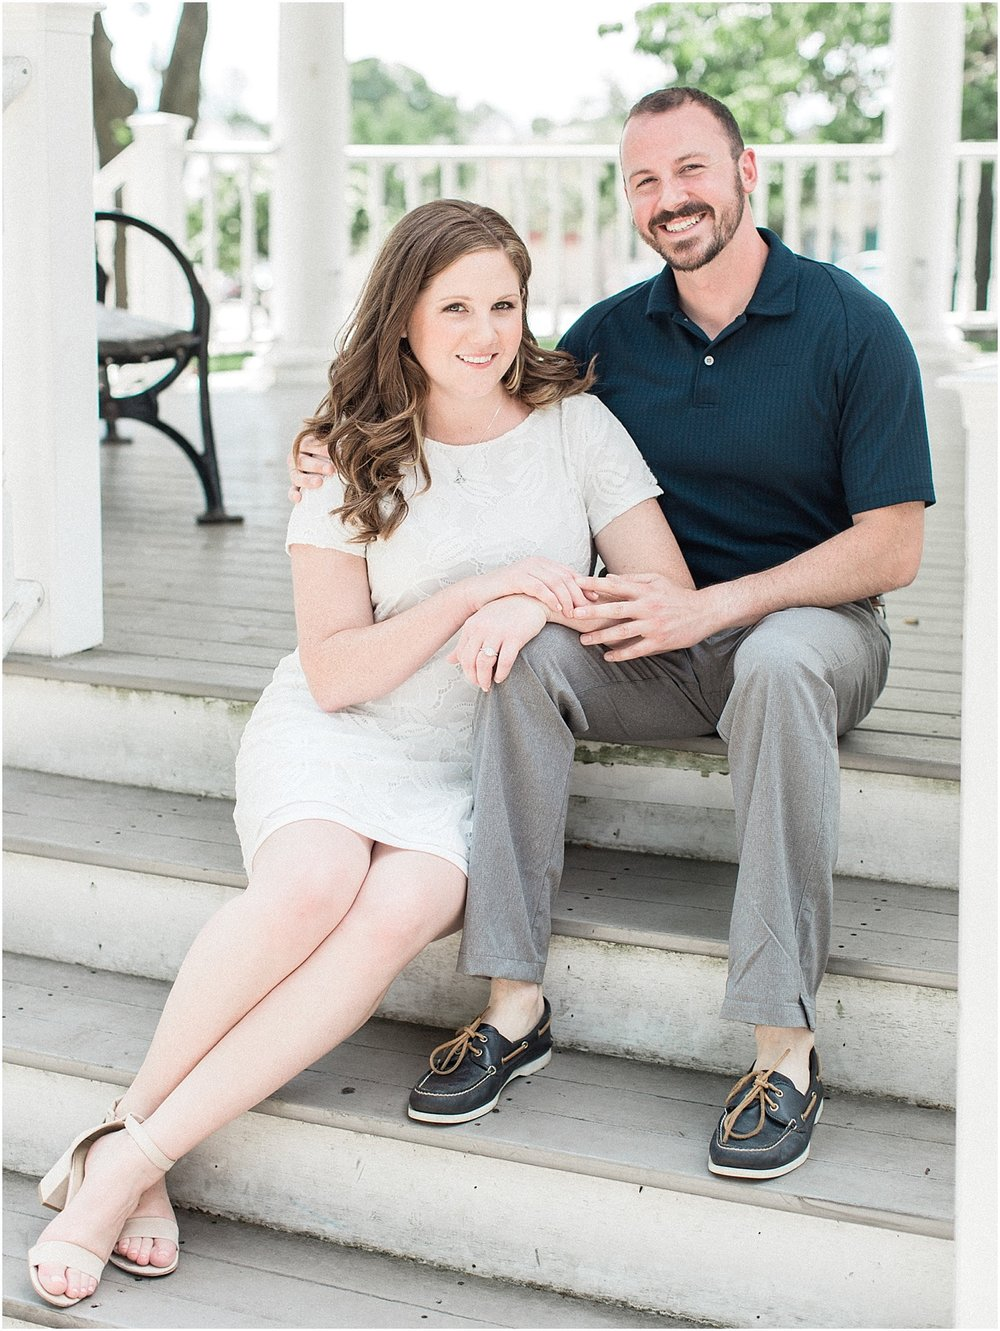 jaclyn_adam_engagement_session_norwood_south_shore_cape_cod_boston_wedding_photographer_meredith_jane_photography_photo_0313.jpg